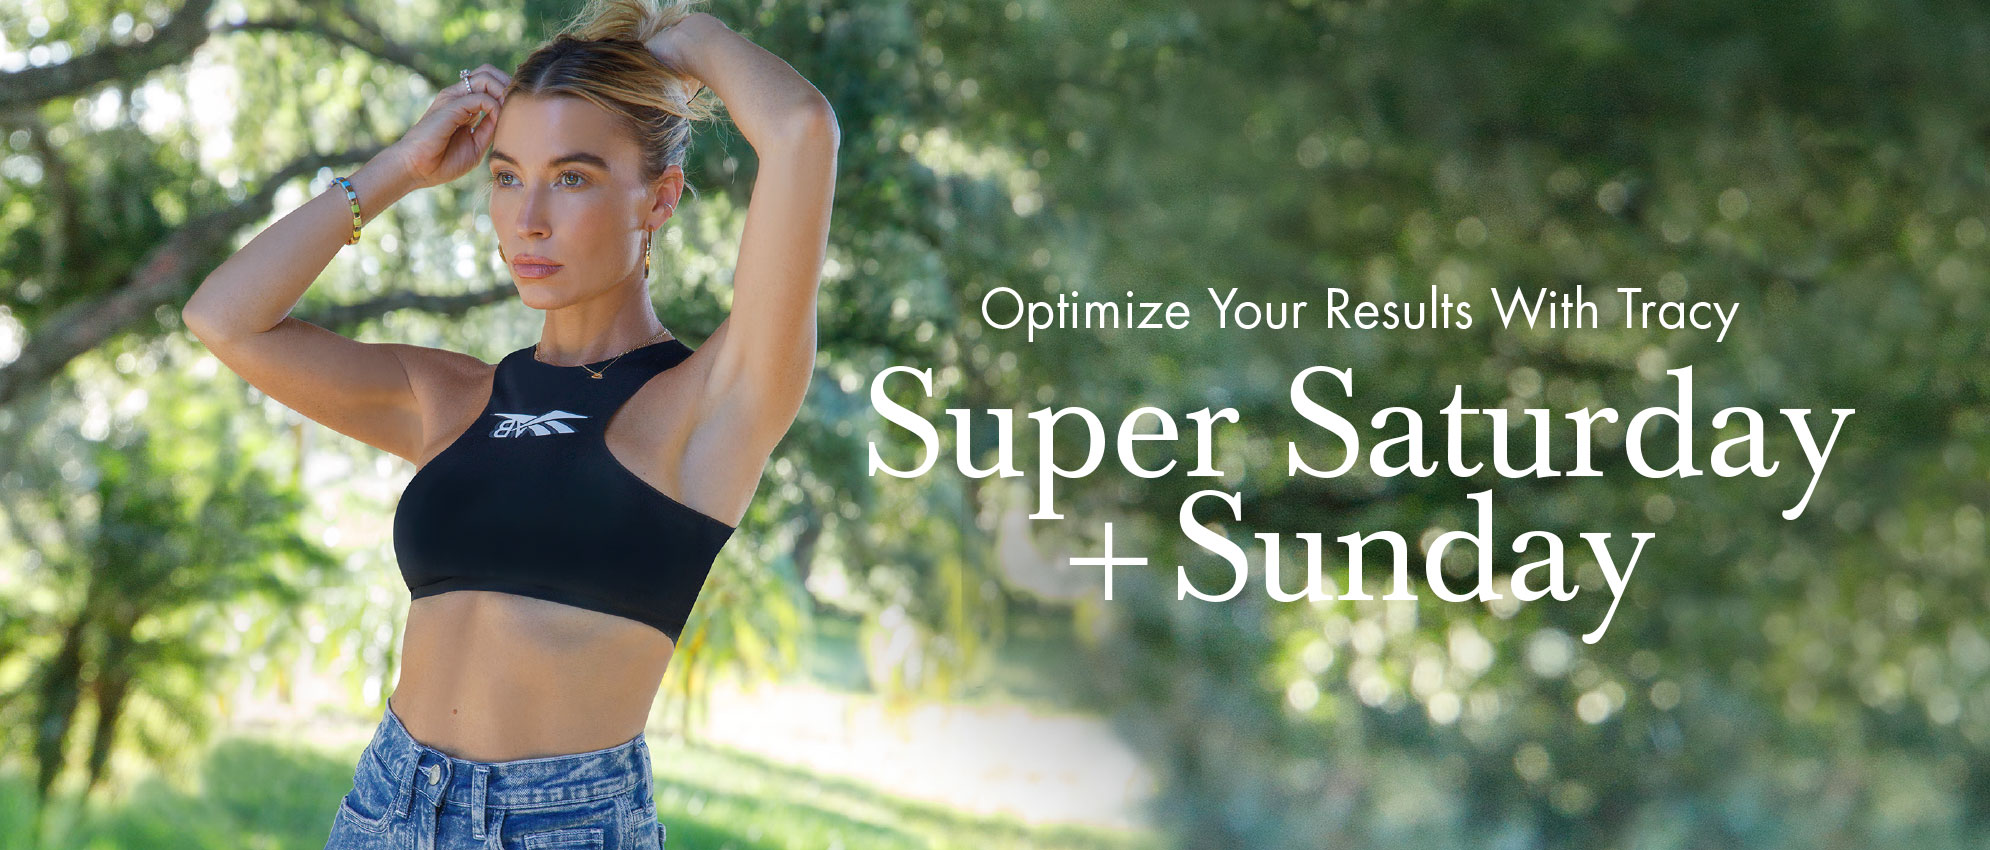 Super Saturday and Sunday with Tracy Anderson